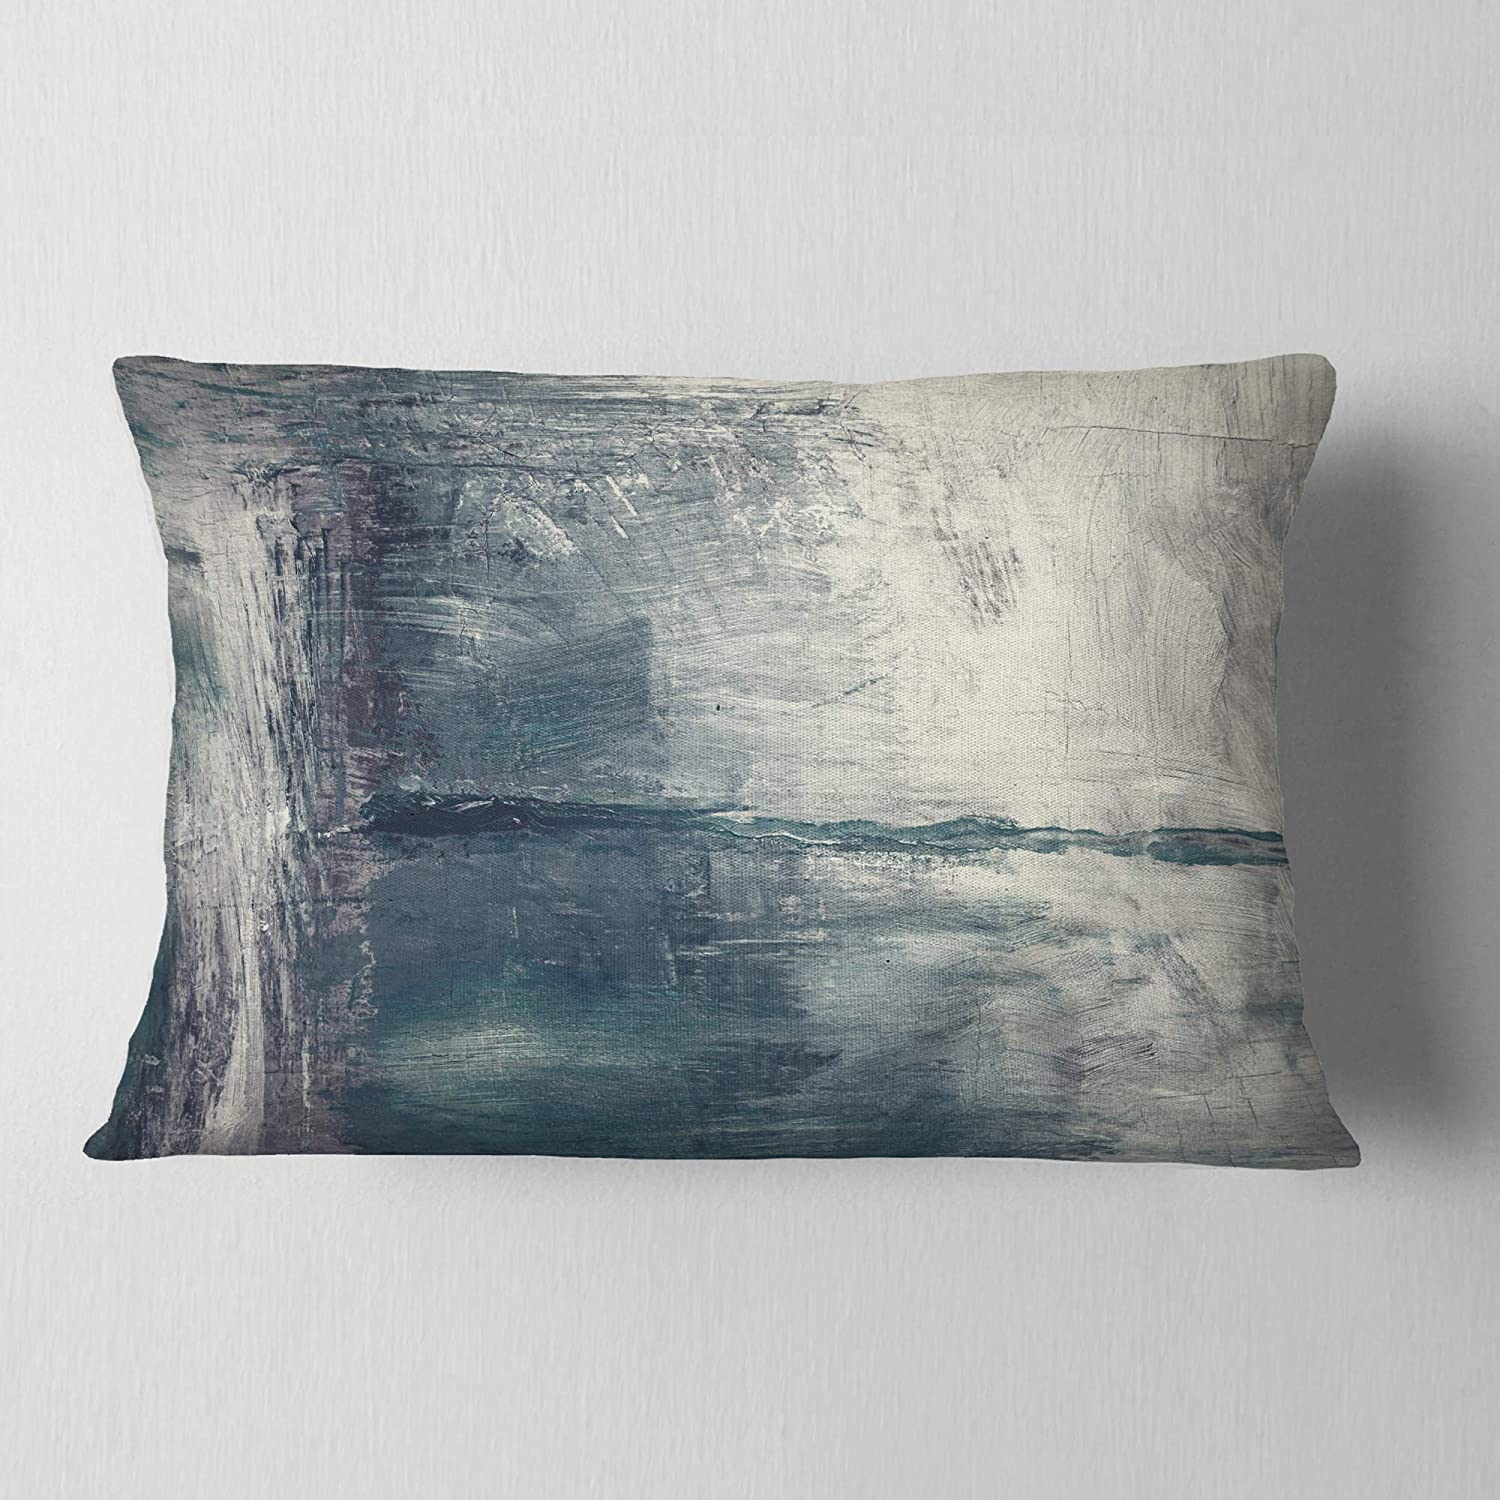 Insert Printed On Both Side x 20 in Designart CU8501-12-20 Grey Pattern Oil Painting Abstract Lumbar Cushion Cover for Living Room 12 in Sofa Throw Pillow in